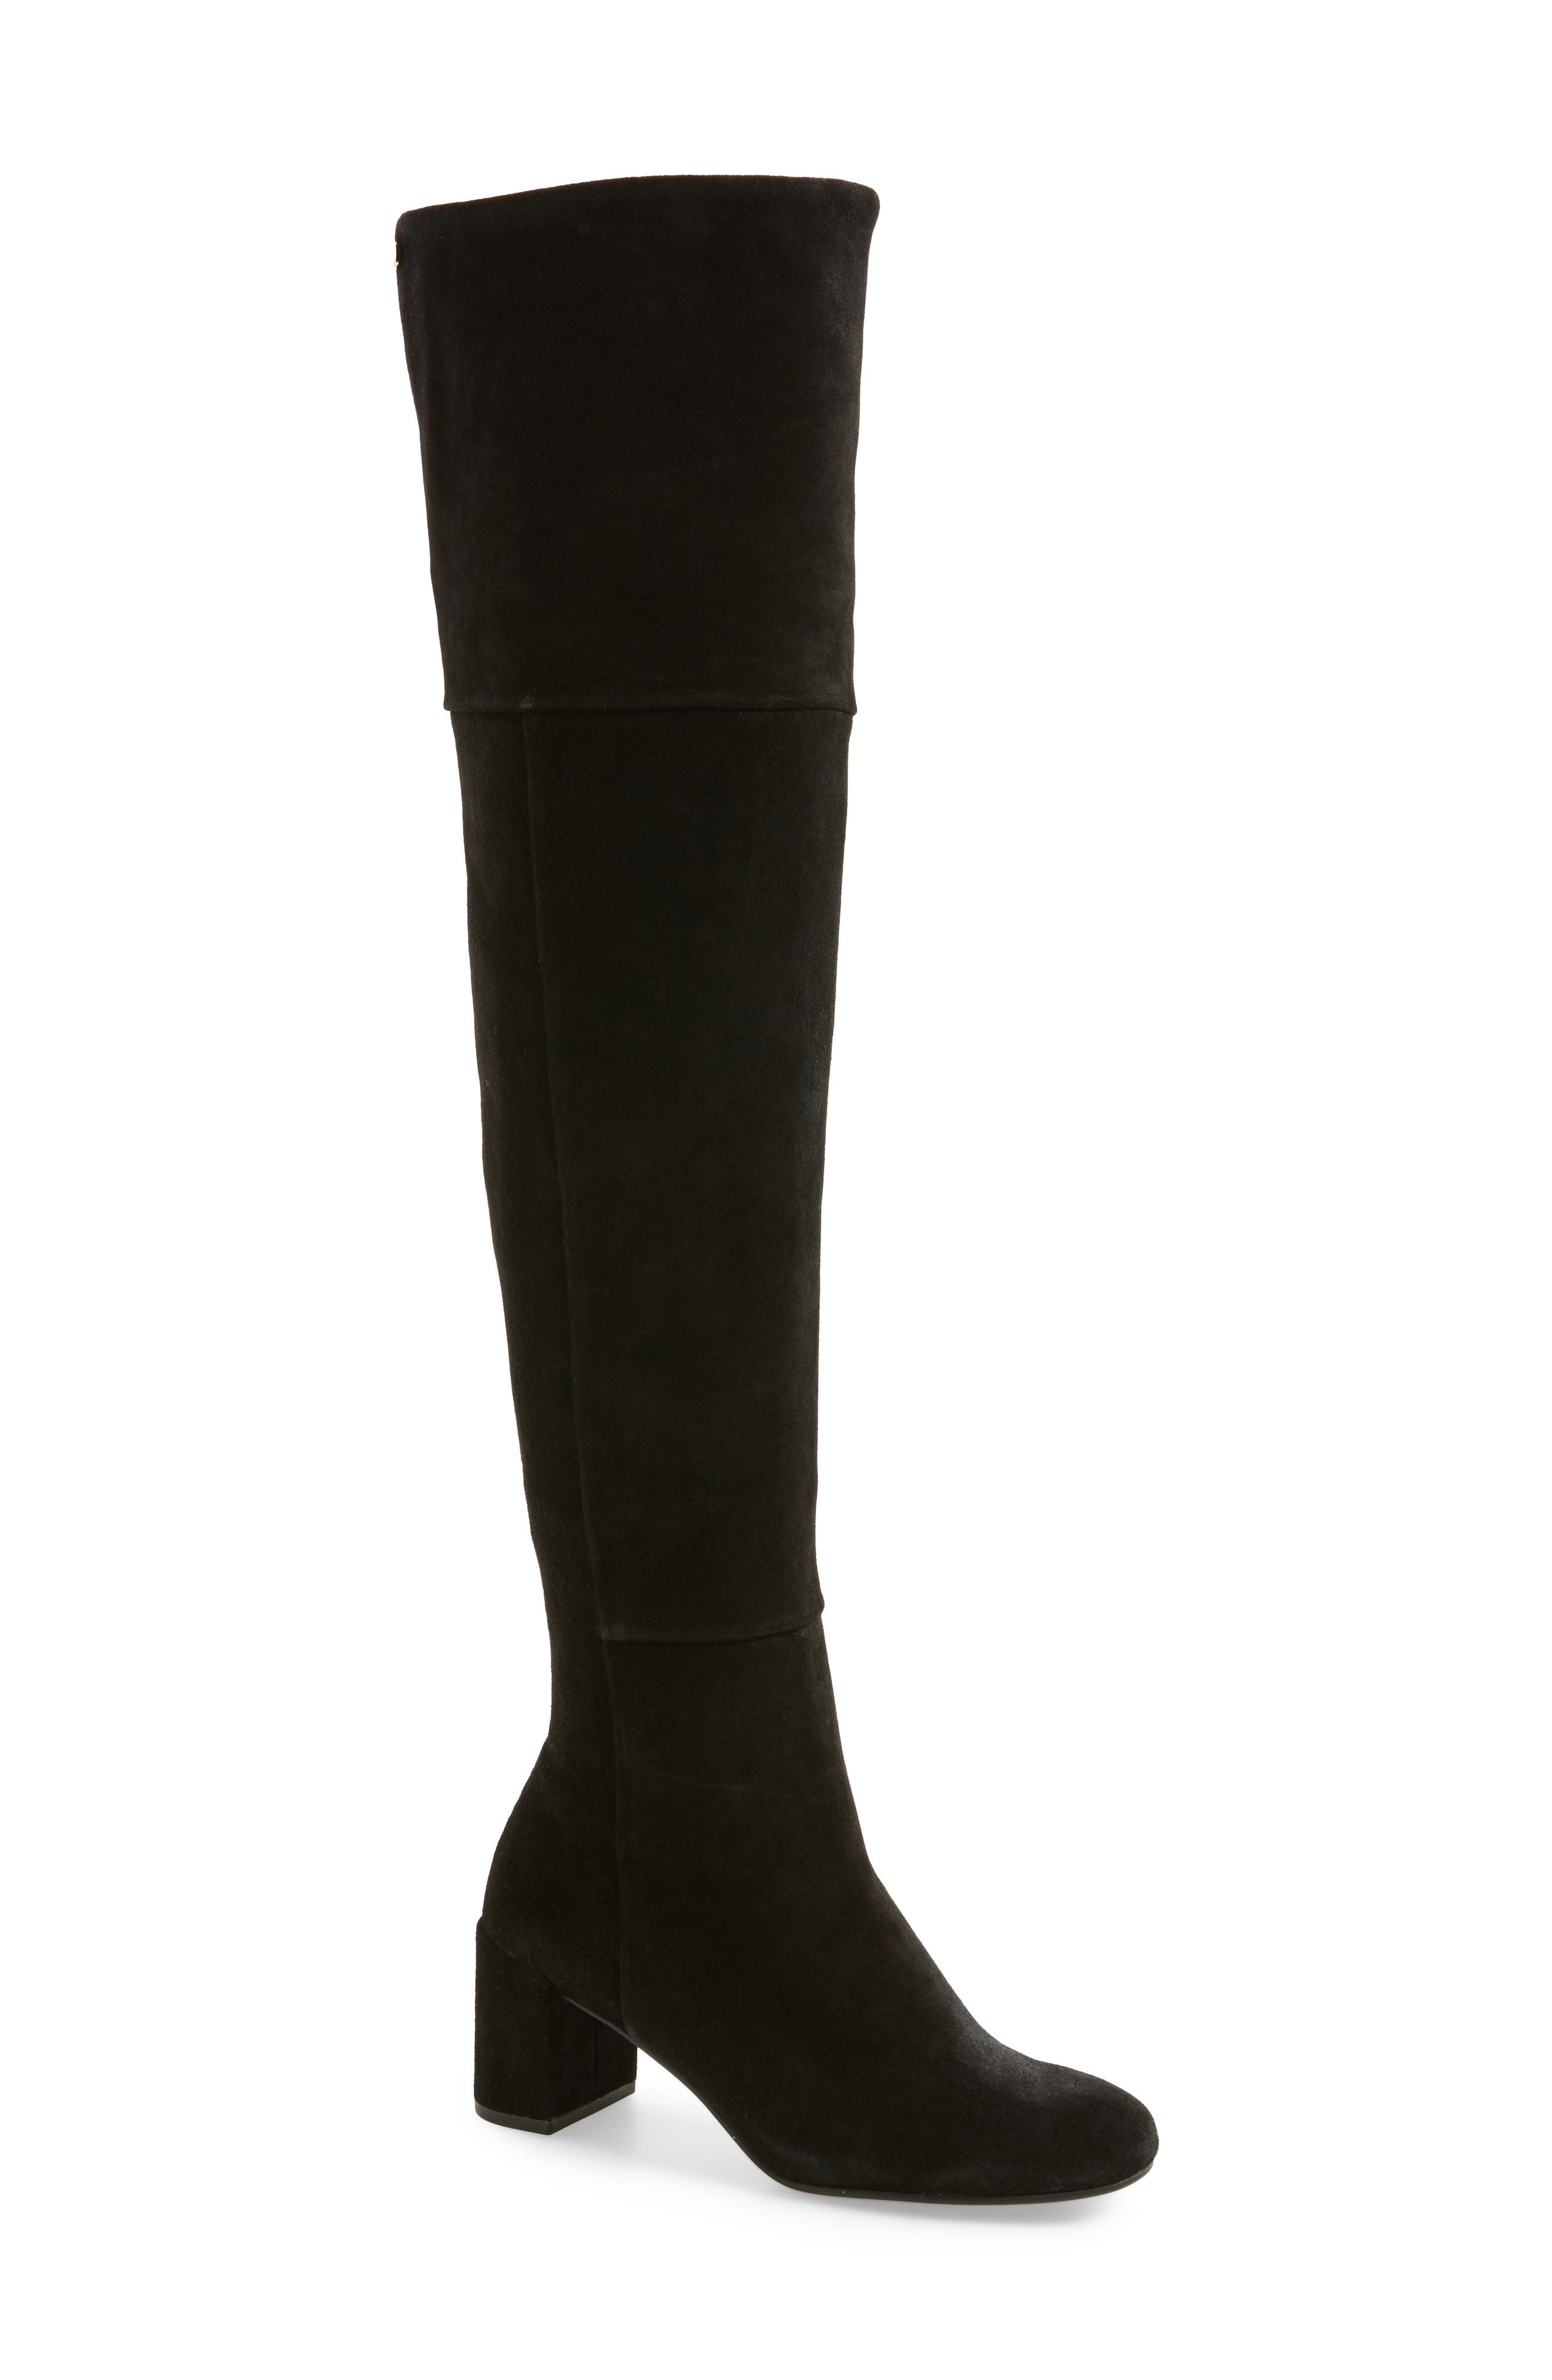 Catherine Over the Knee Boot,                         Main,                         color, 004